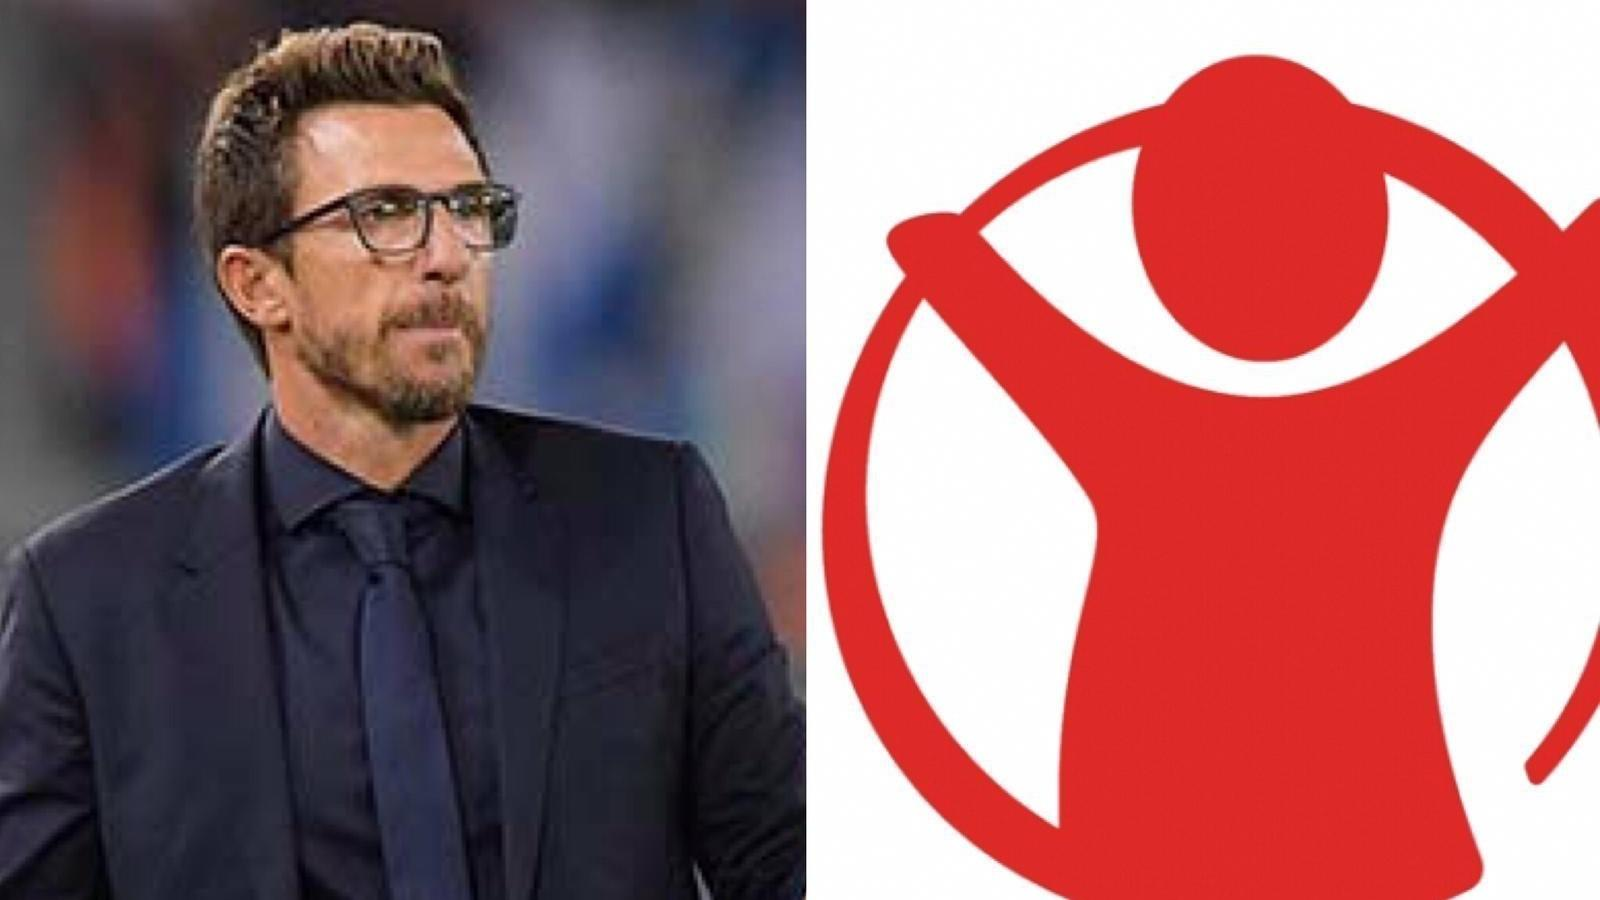 VIDEO - Di Francesco con Save the Children: